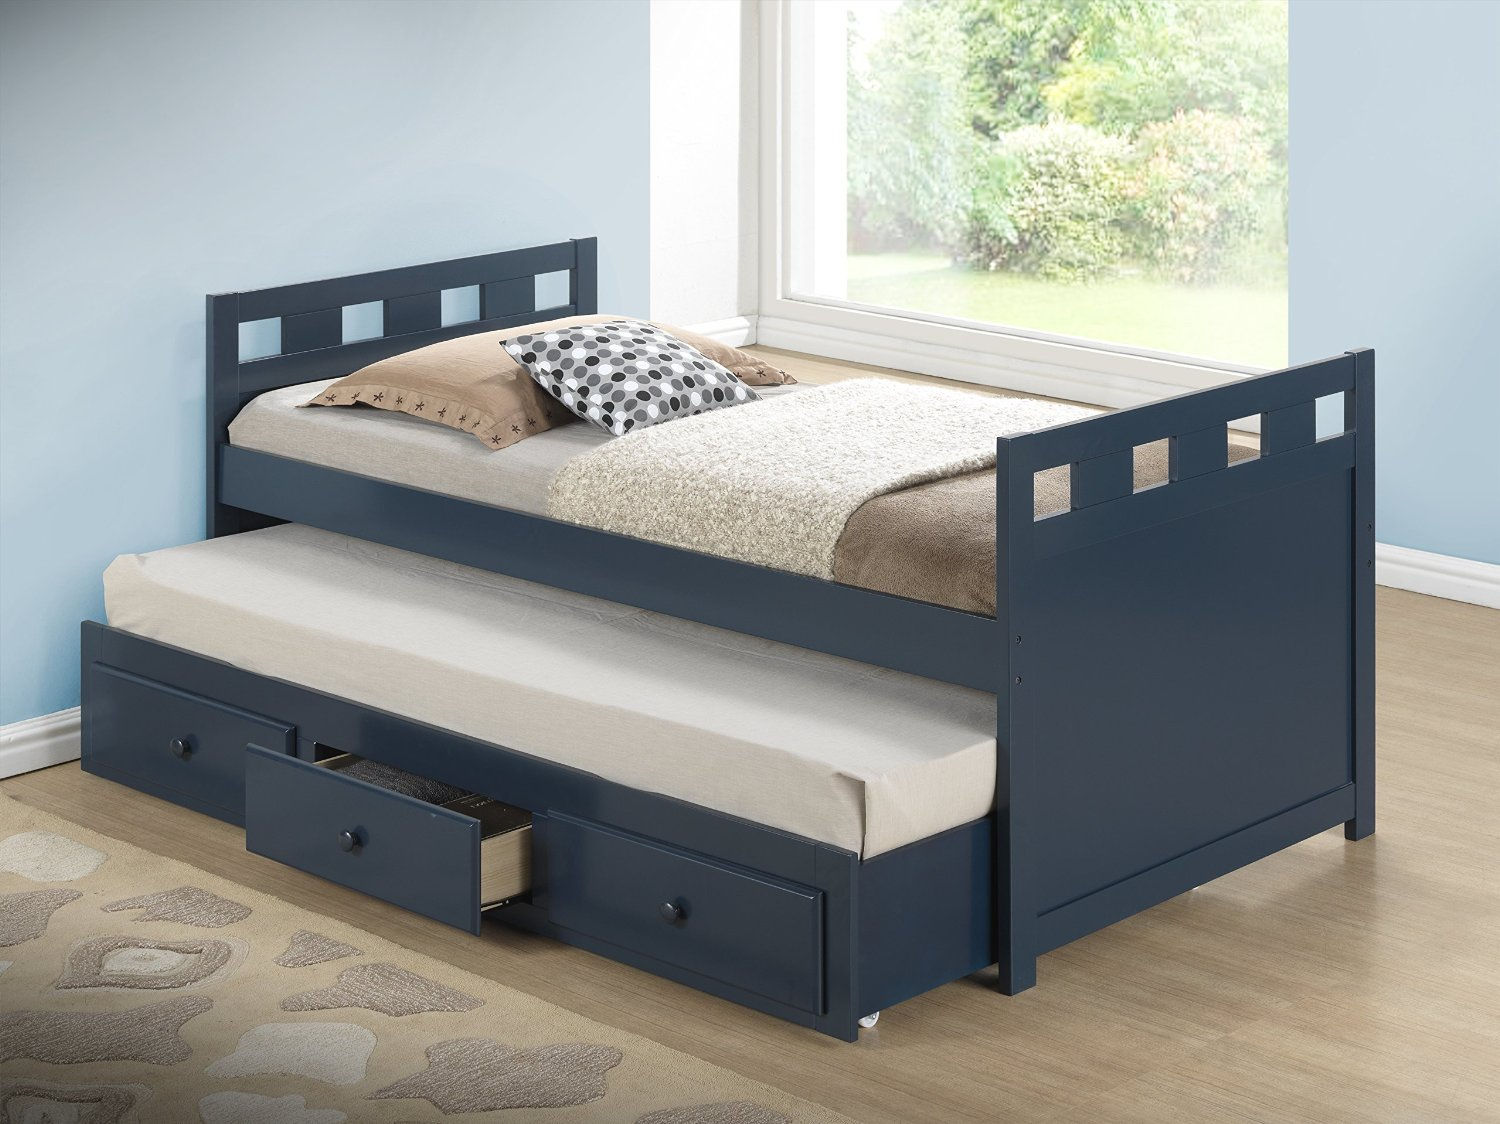 Best Bed For Small Bedroom Twin Bed With Pull Out Slide Out Trundle Bed Underneath